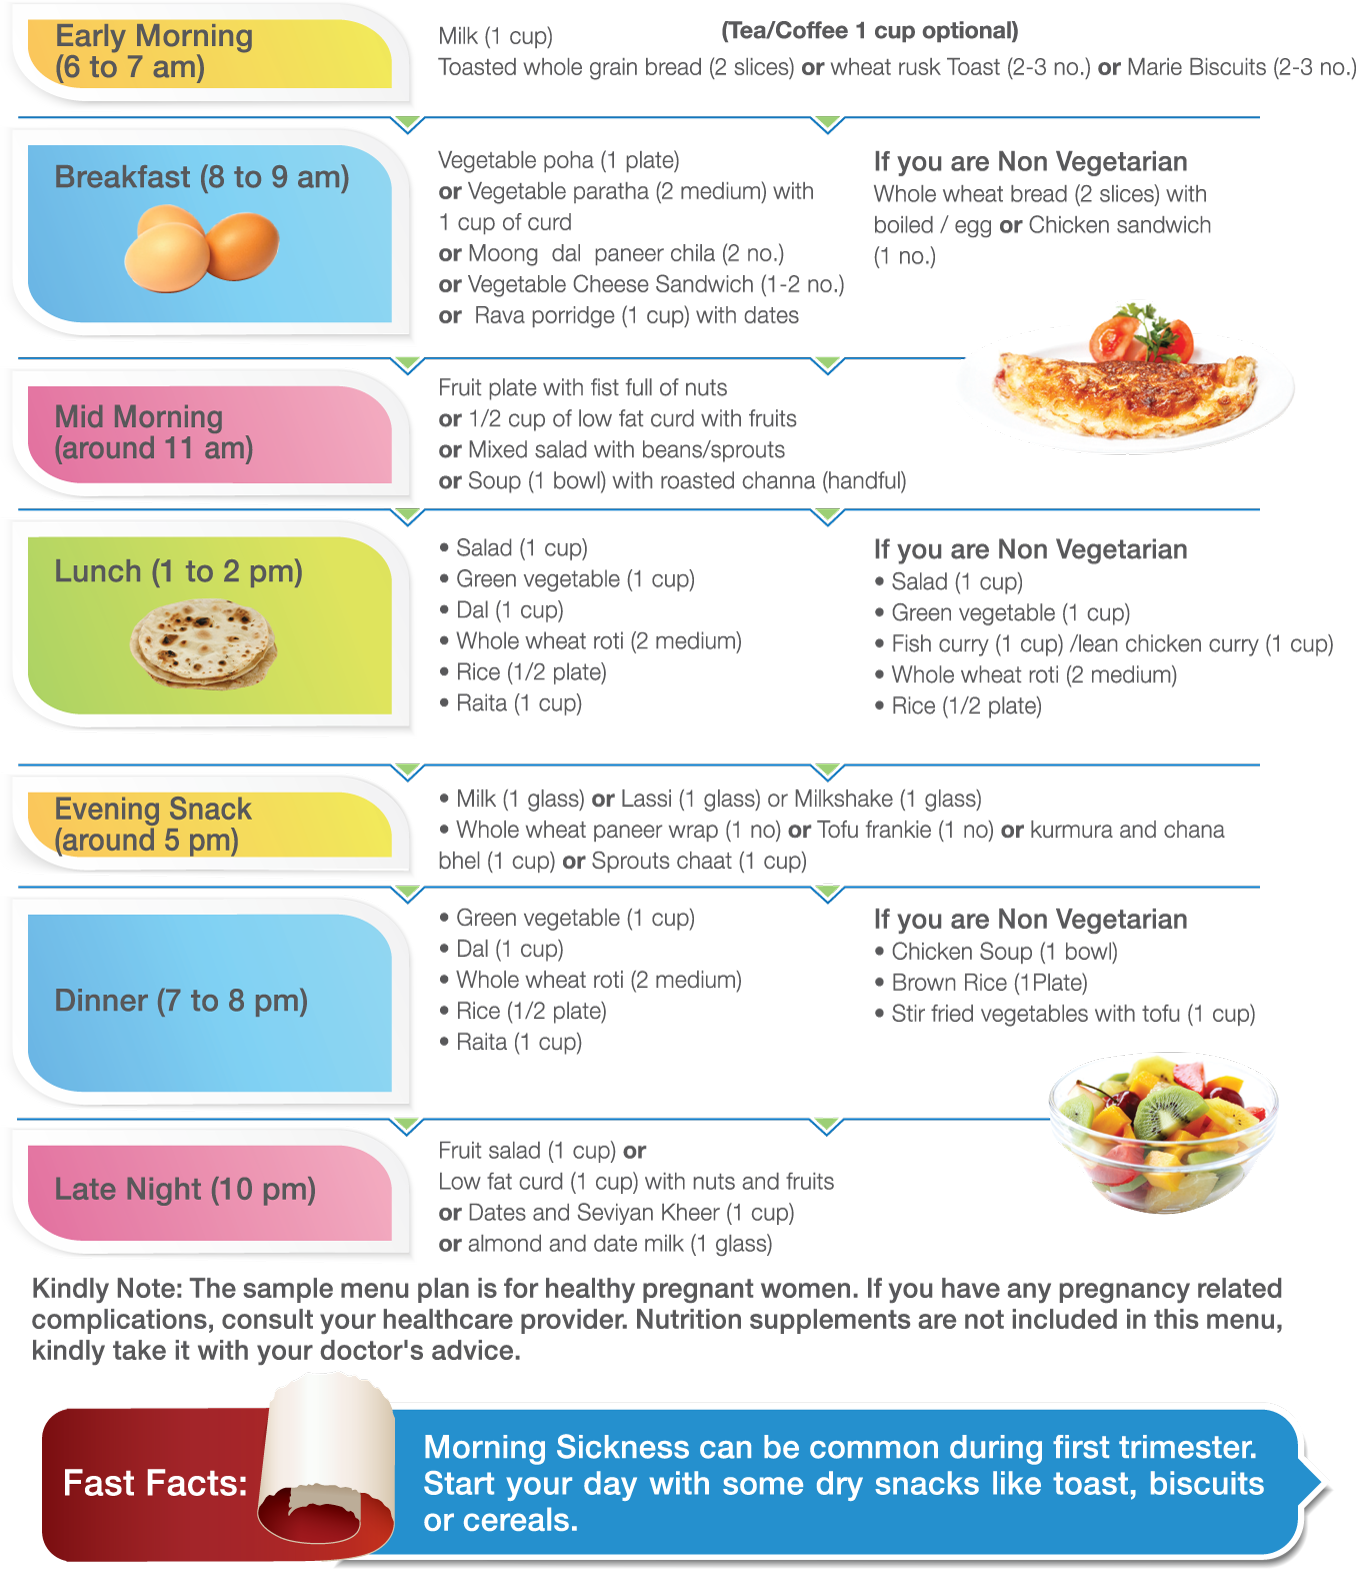 Pregnancy meal planners: trimester by trimester babycenter.